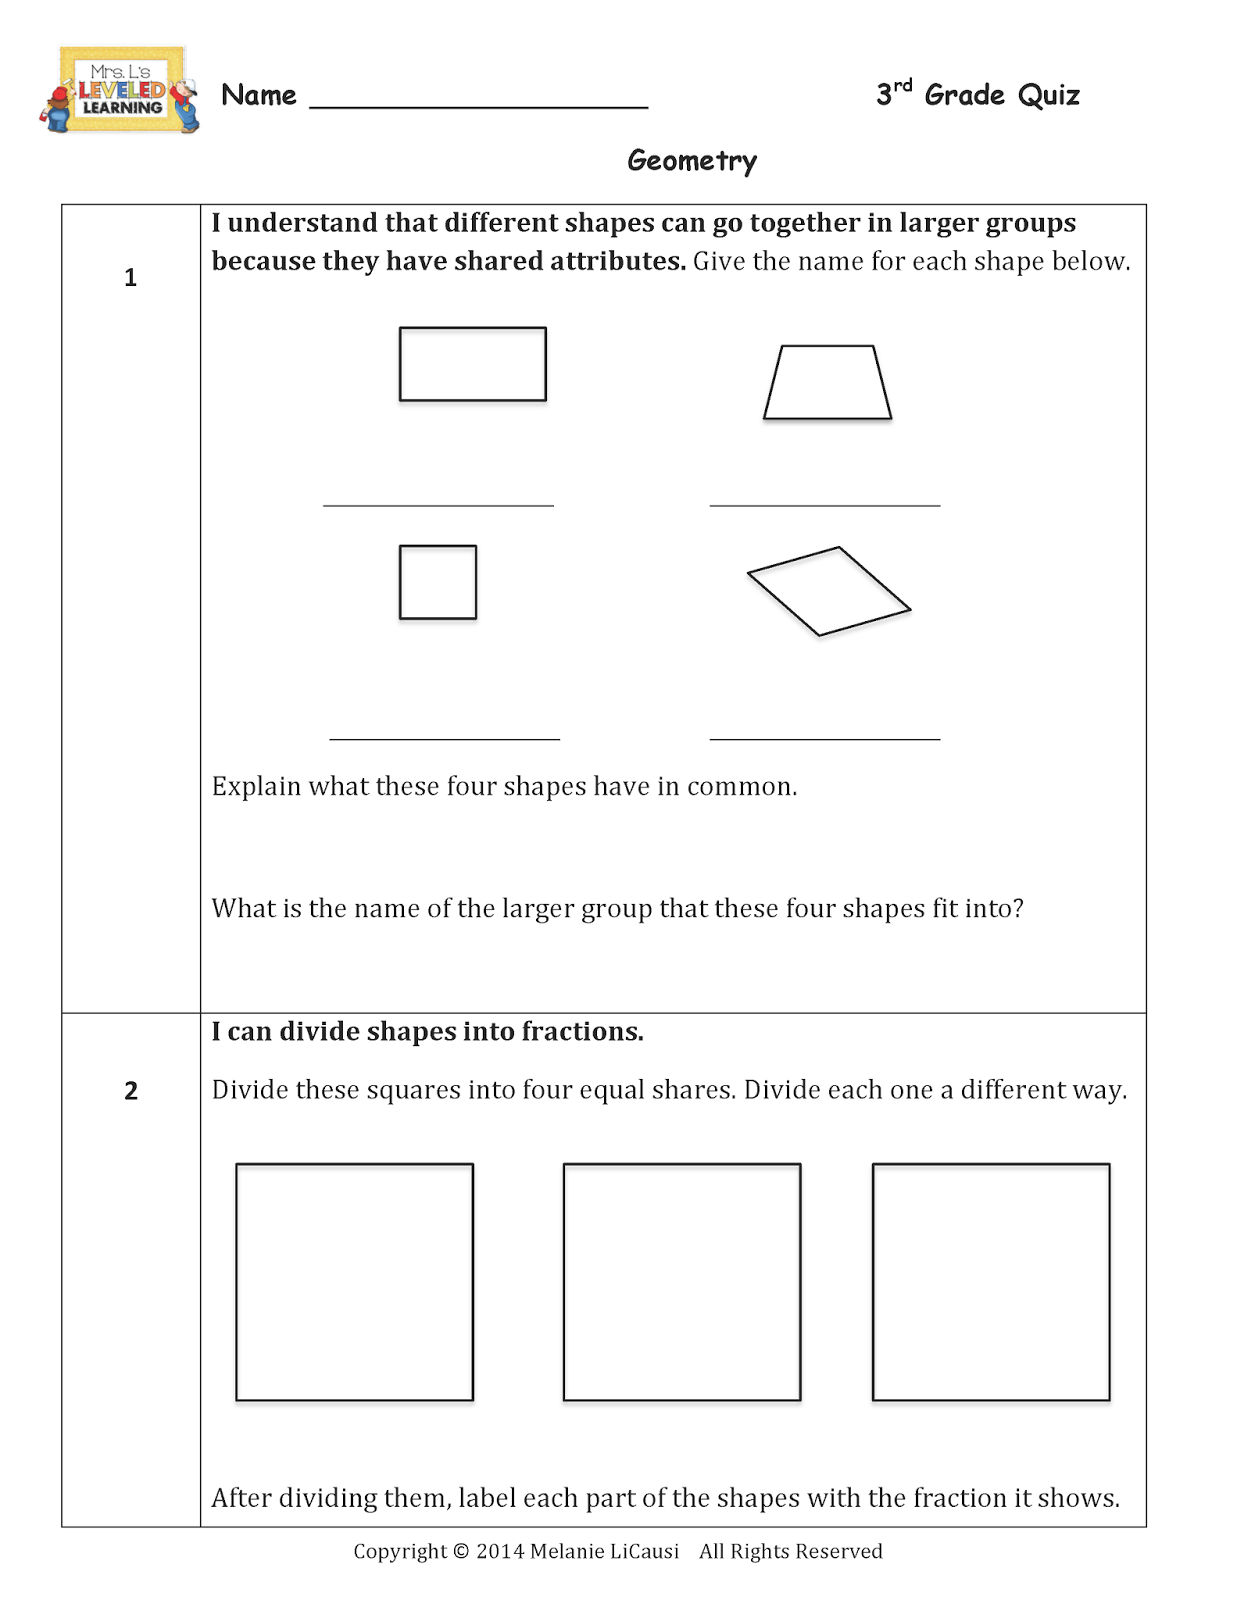 differentiation and integration quiz pdf